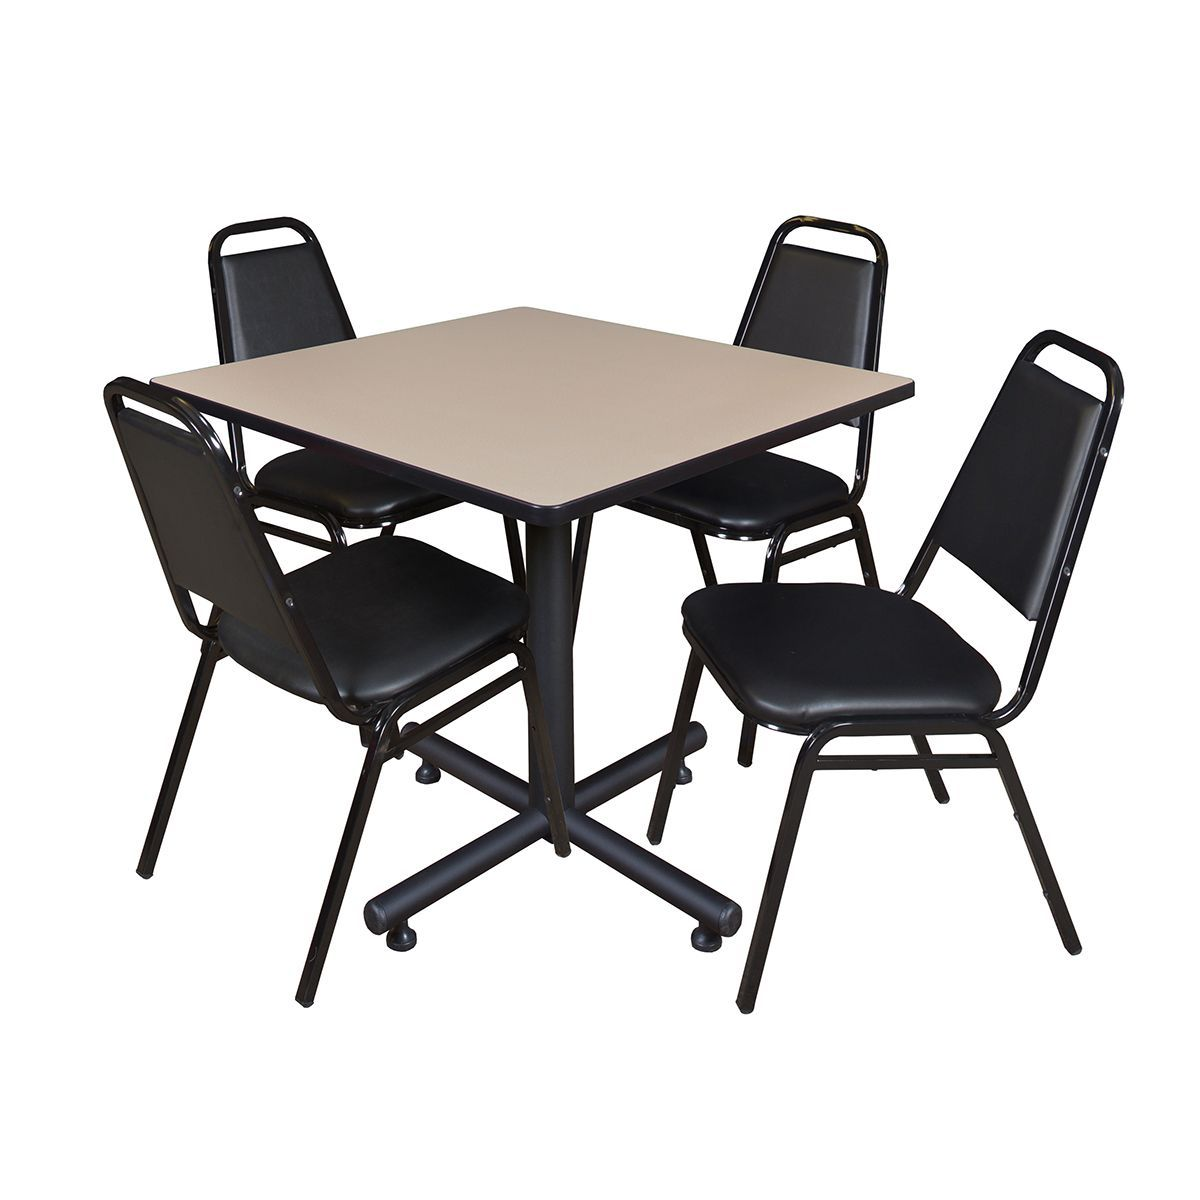 Regency Seating Kobe 42-inch Square Breakroom Table and 4 Black Restaurant Stack Chairs